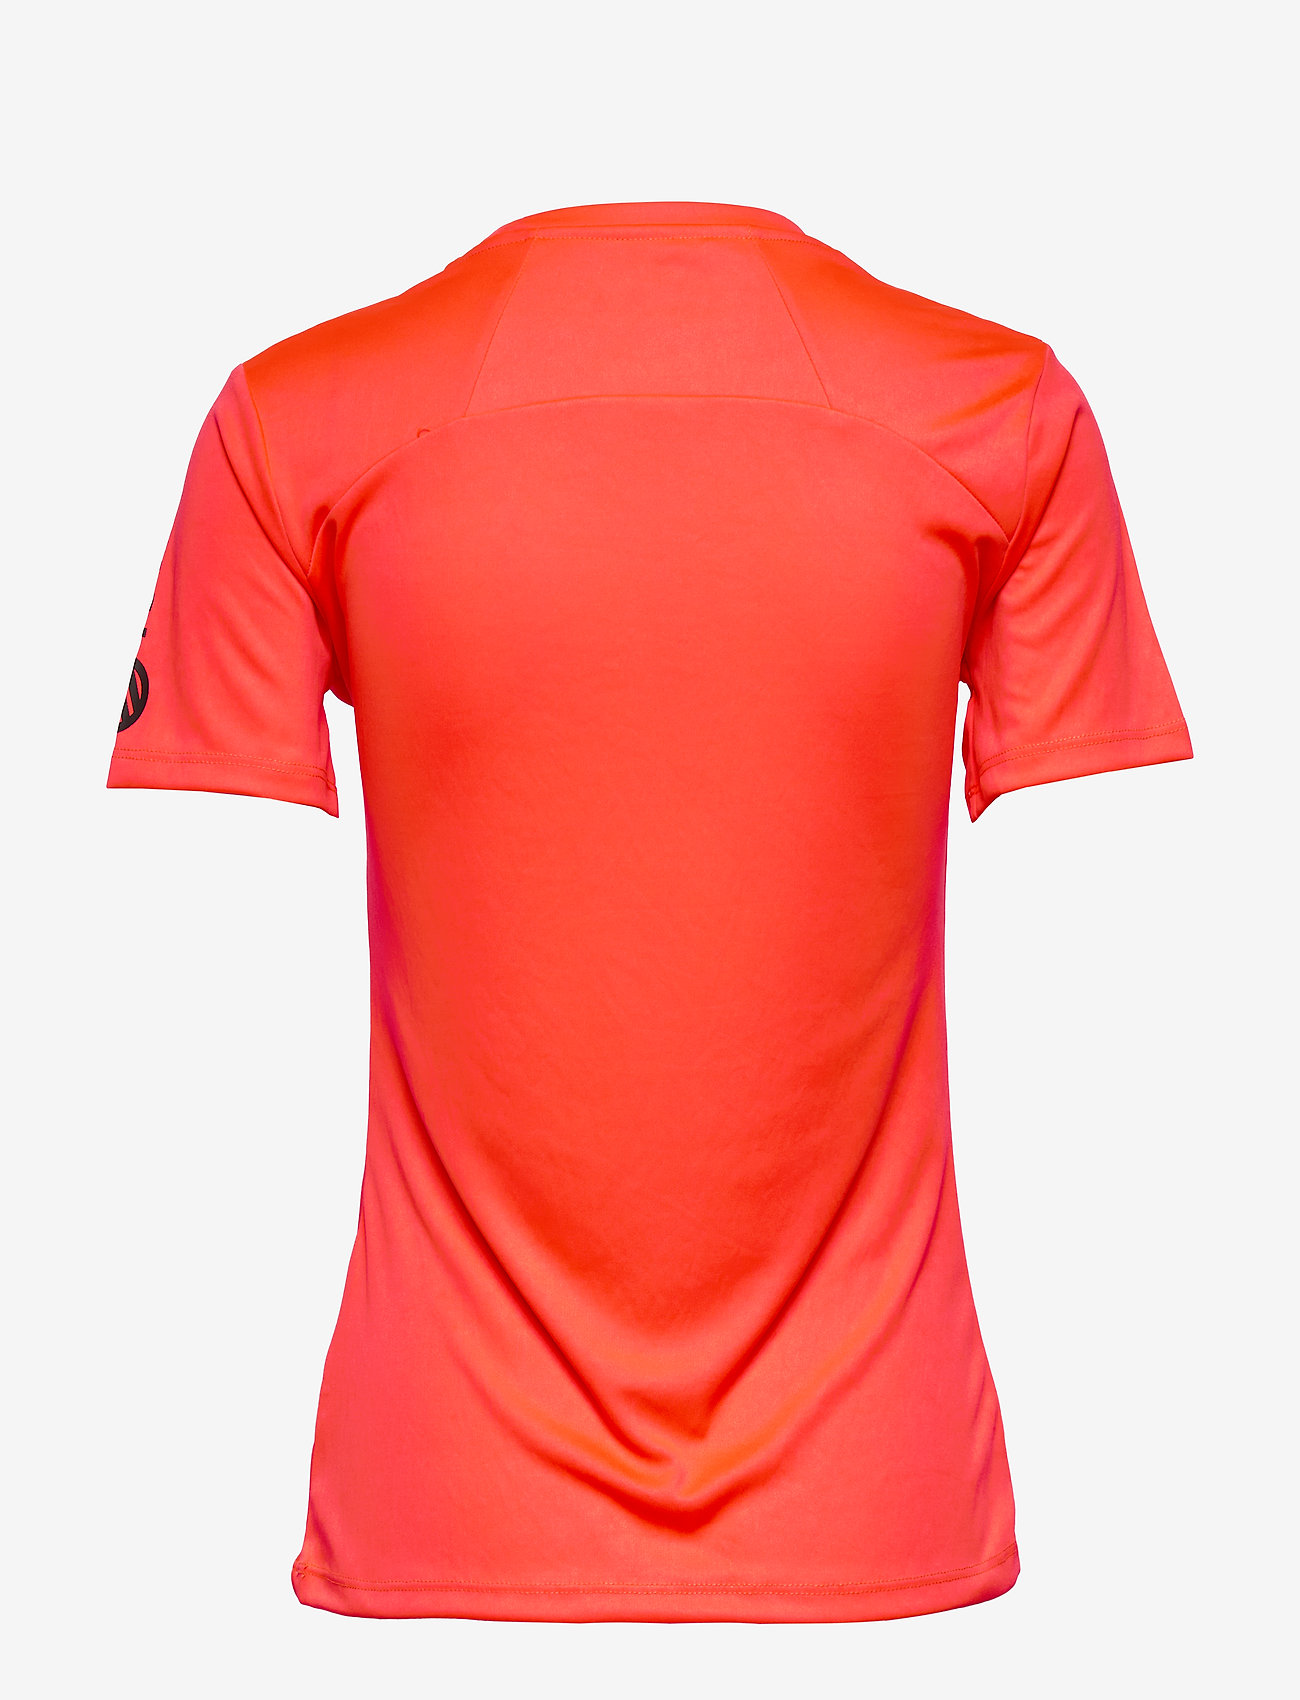 Anet Women's Training T-shirt (Neon Fiery Coral) (224.25 kr) - Halti